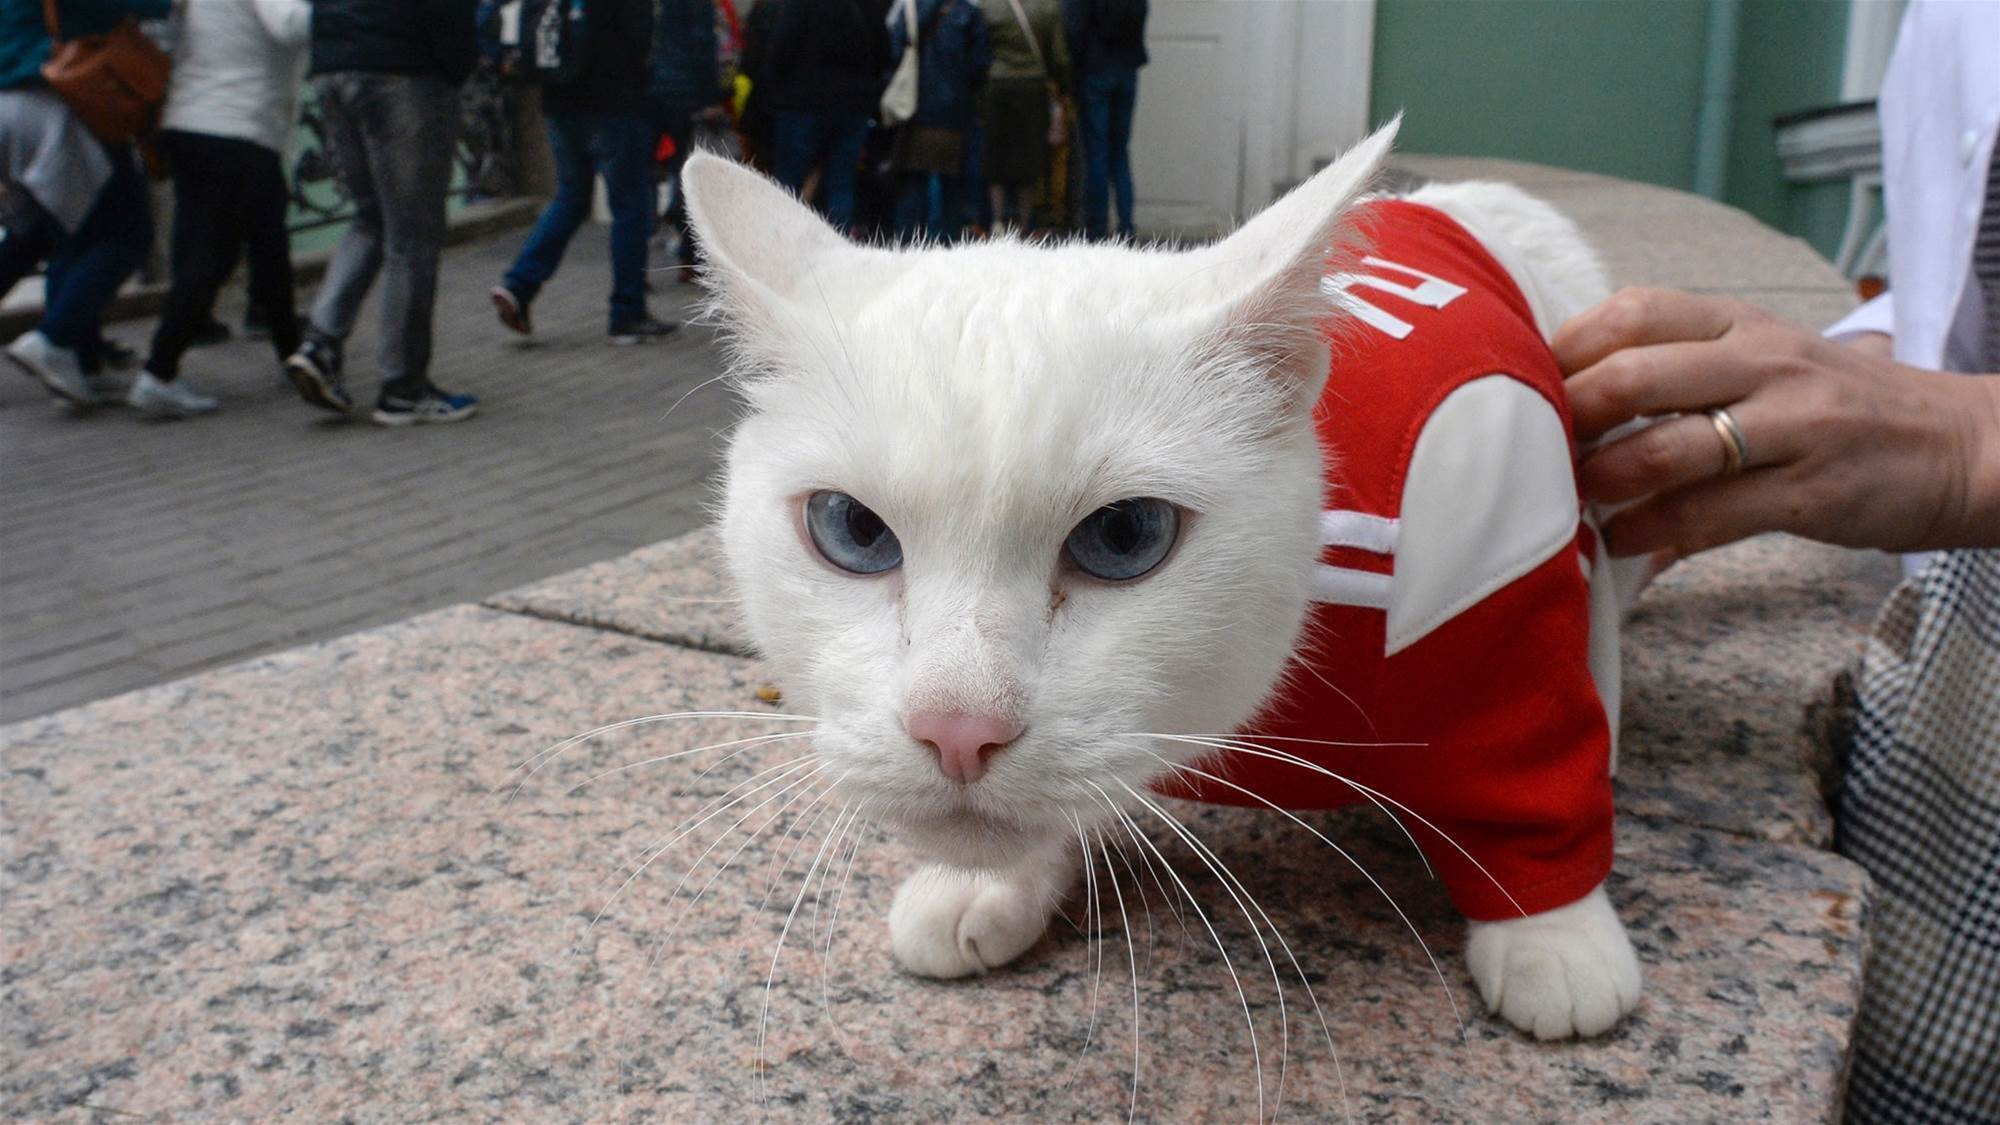 Sartorially-biased psychic cat forecasts victory for Russia over Egypt